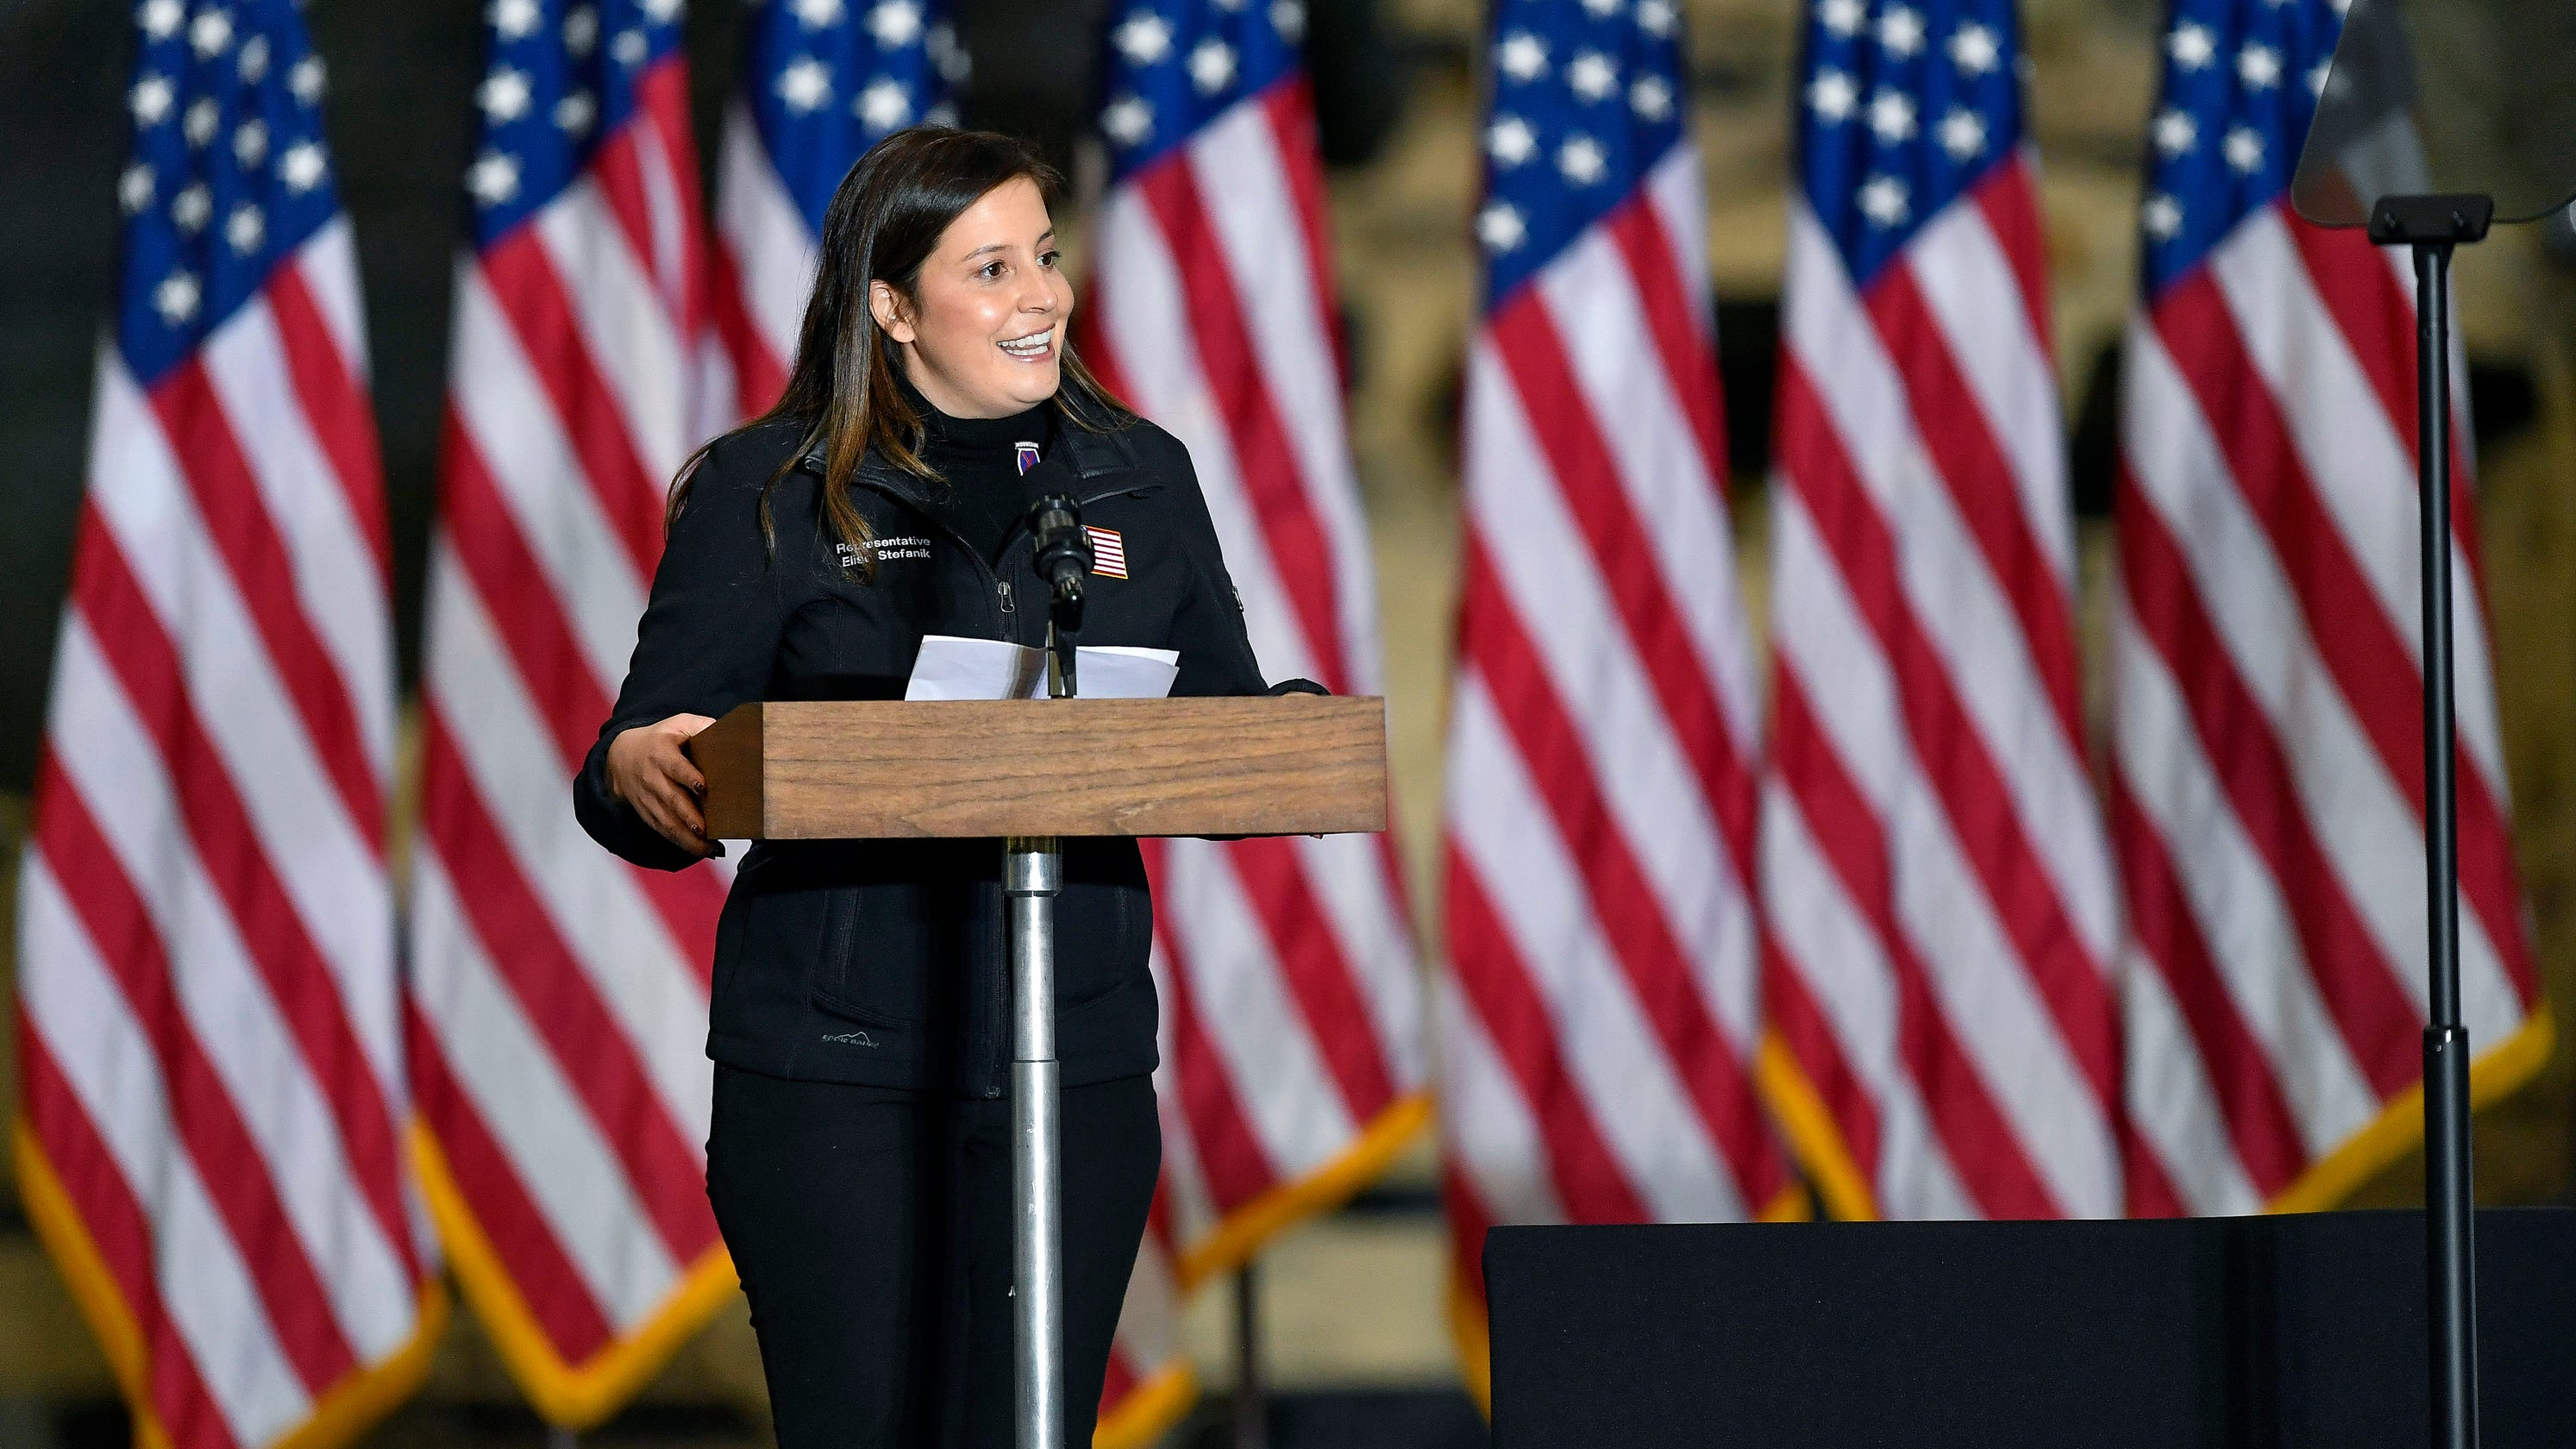 Stefanik emerges from candidate-forum as front runner to replace Cheney